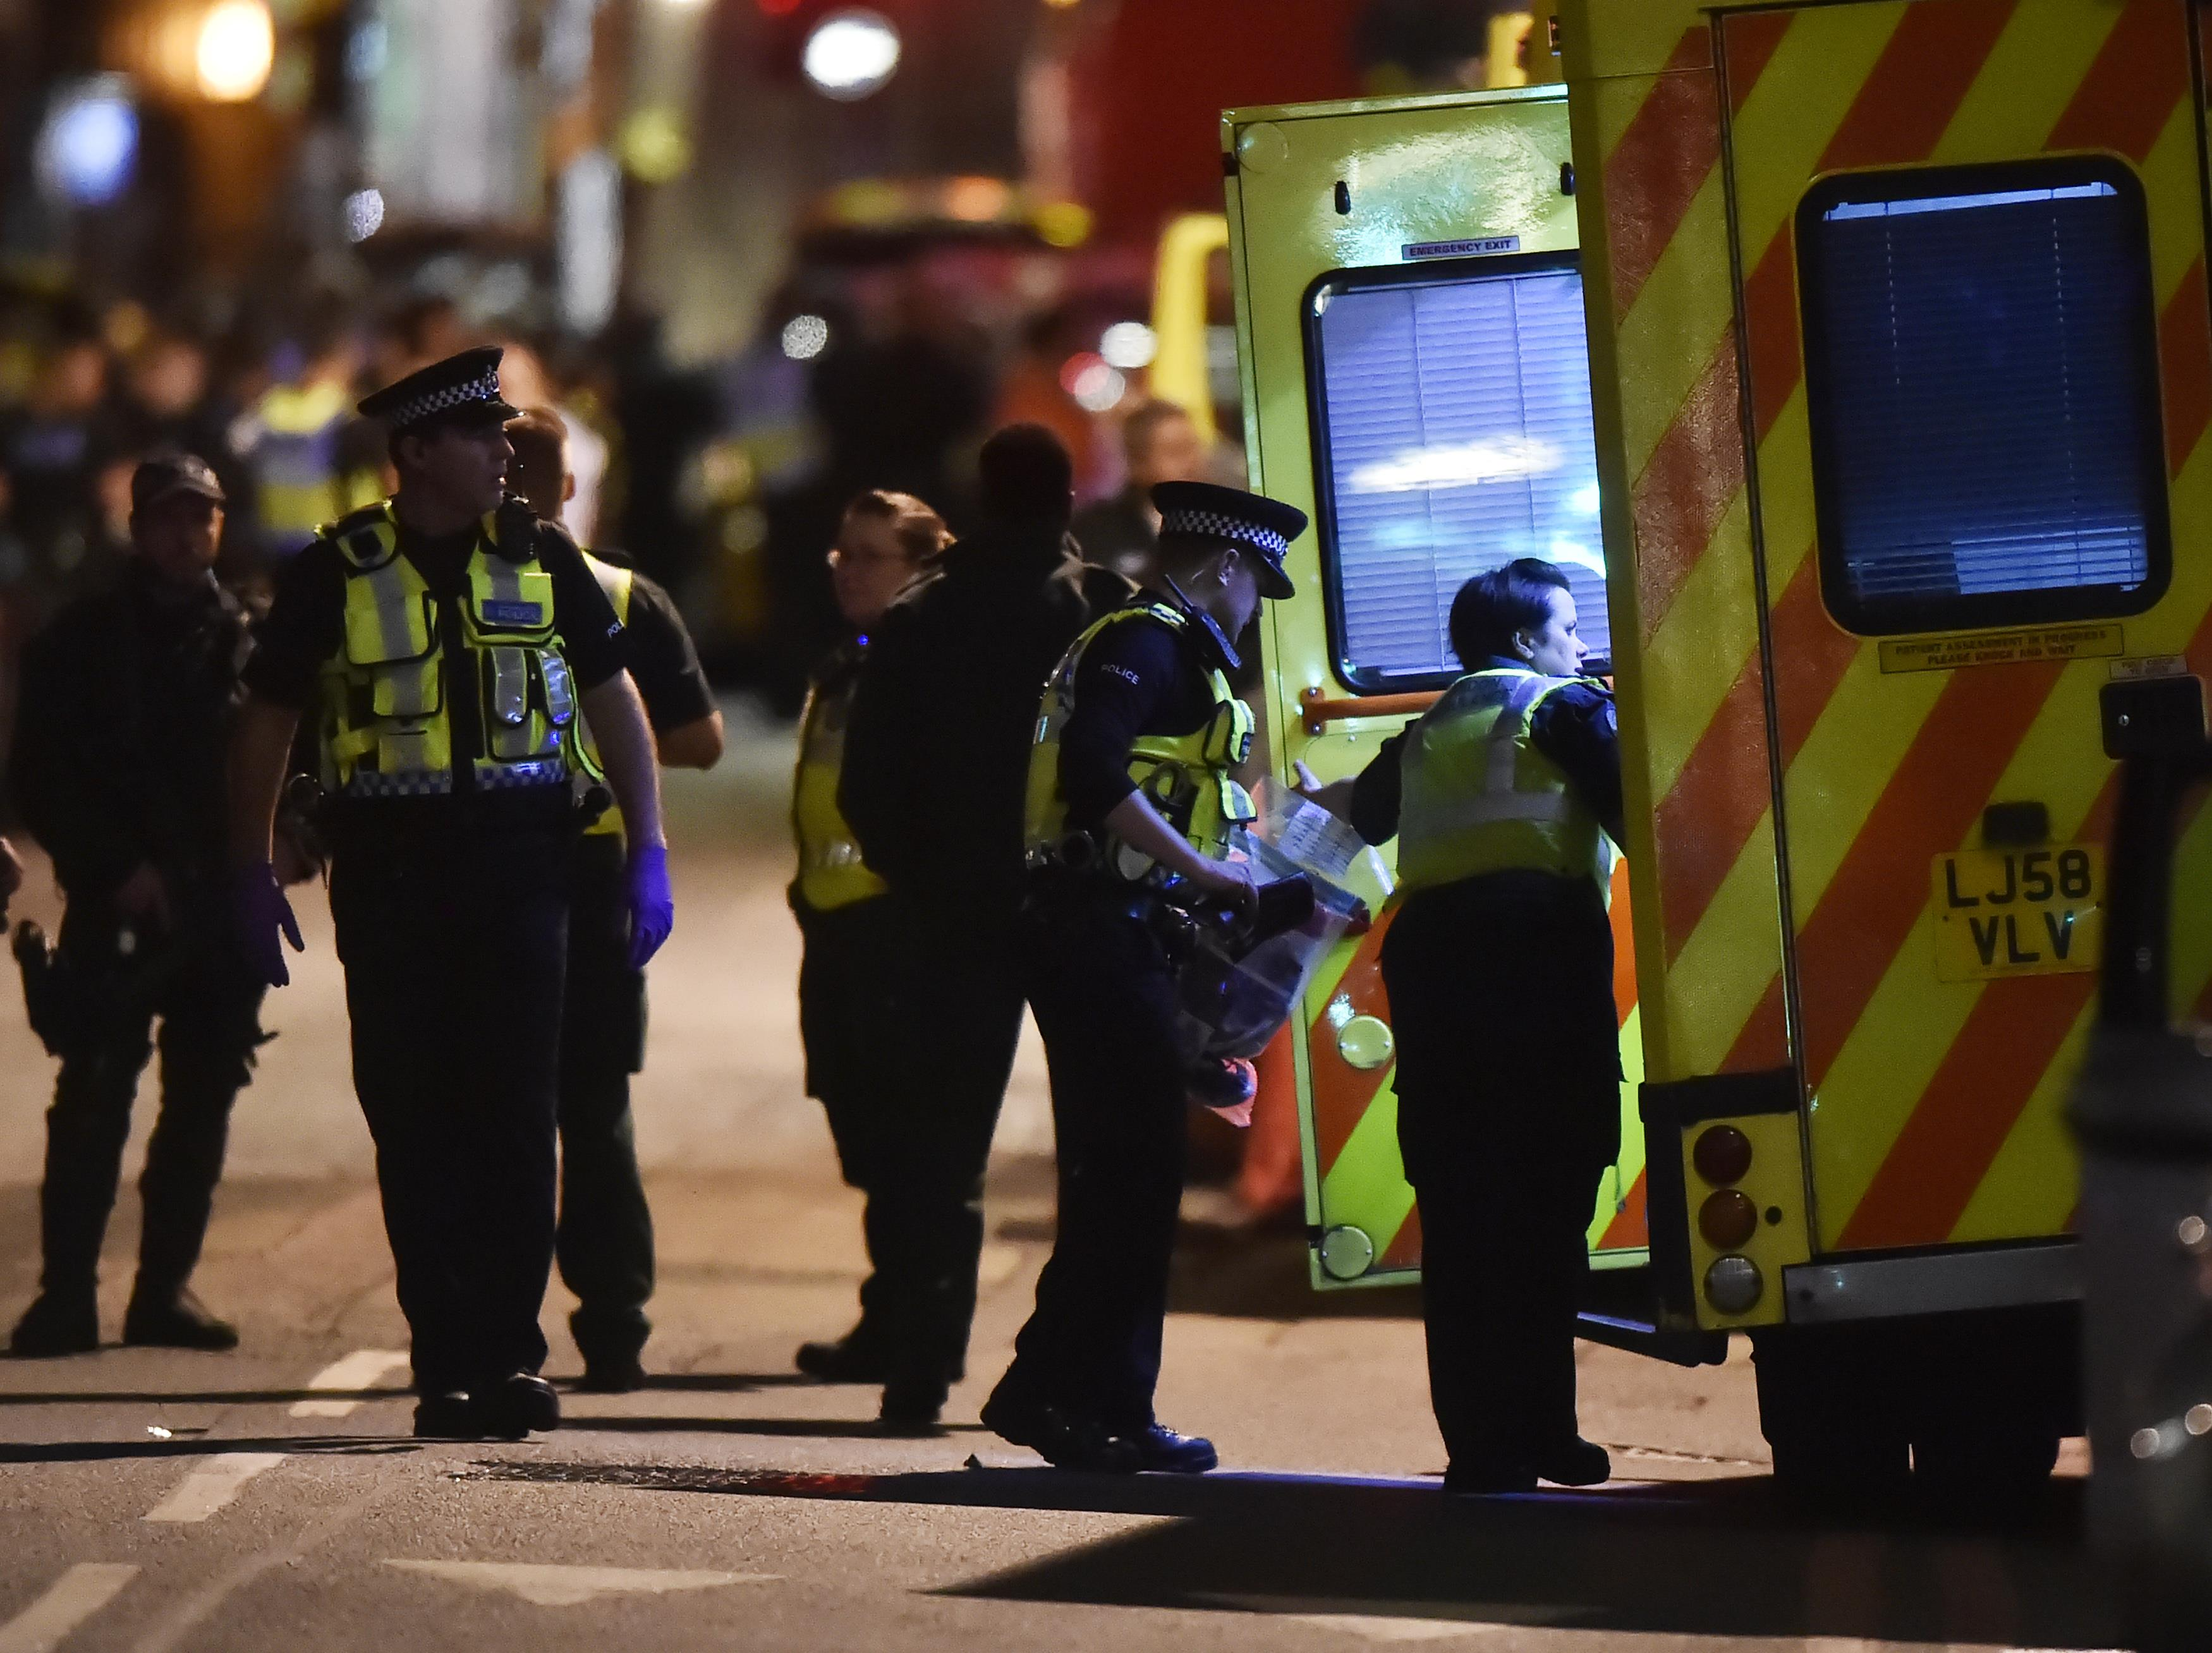 In pictures: Revellers stabbed as attackers plough van into London crowd